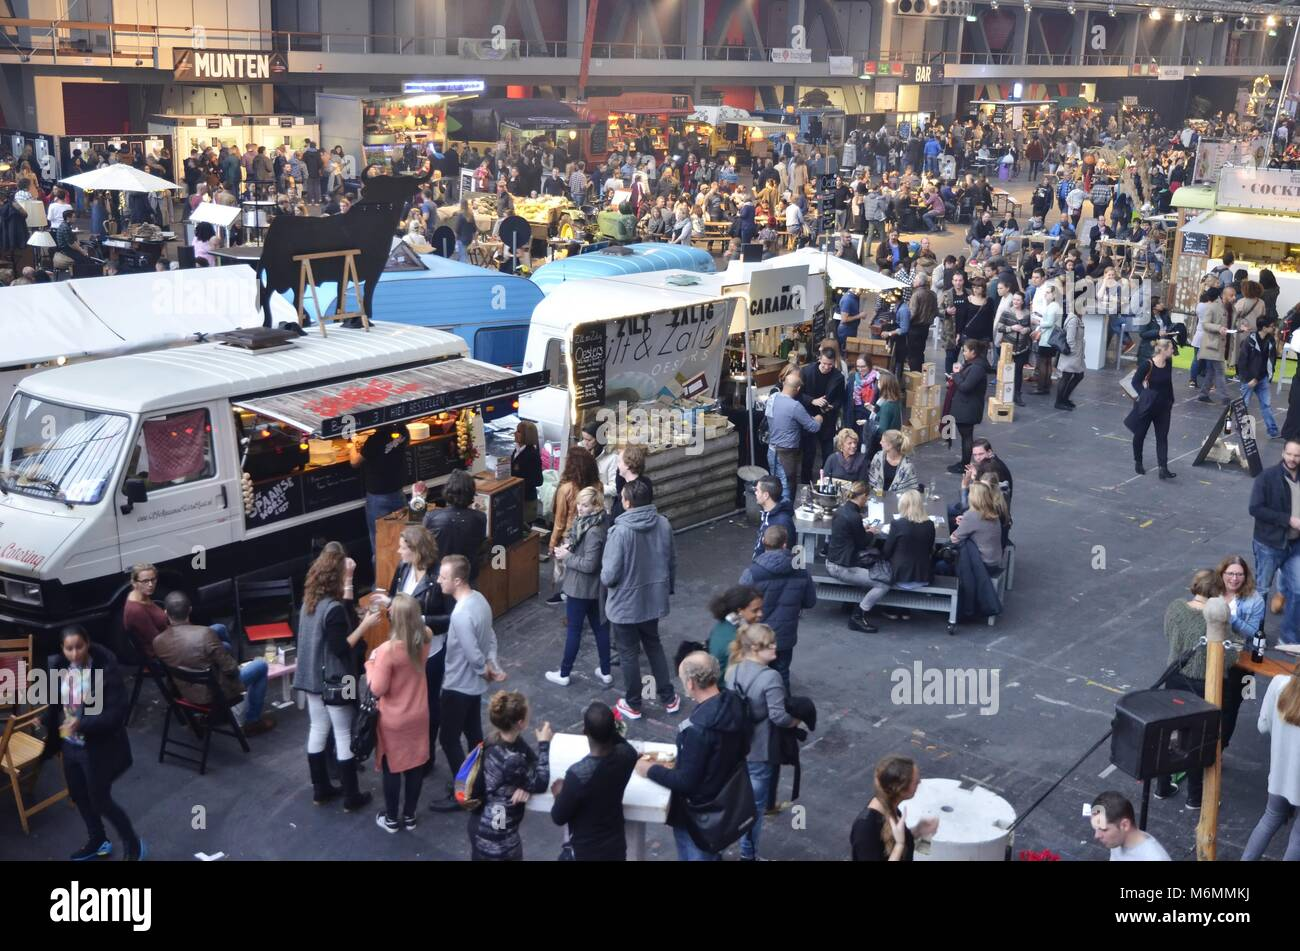 Visitors at the Spaanse Worst Lust and the Zilt en Zalig food trucks in the Europe Complex (Europahal) at the time - Stock Image